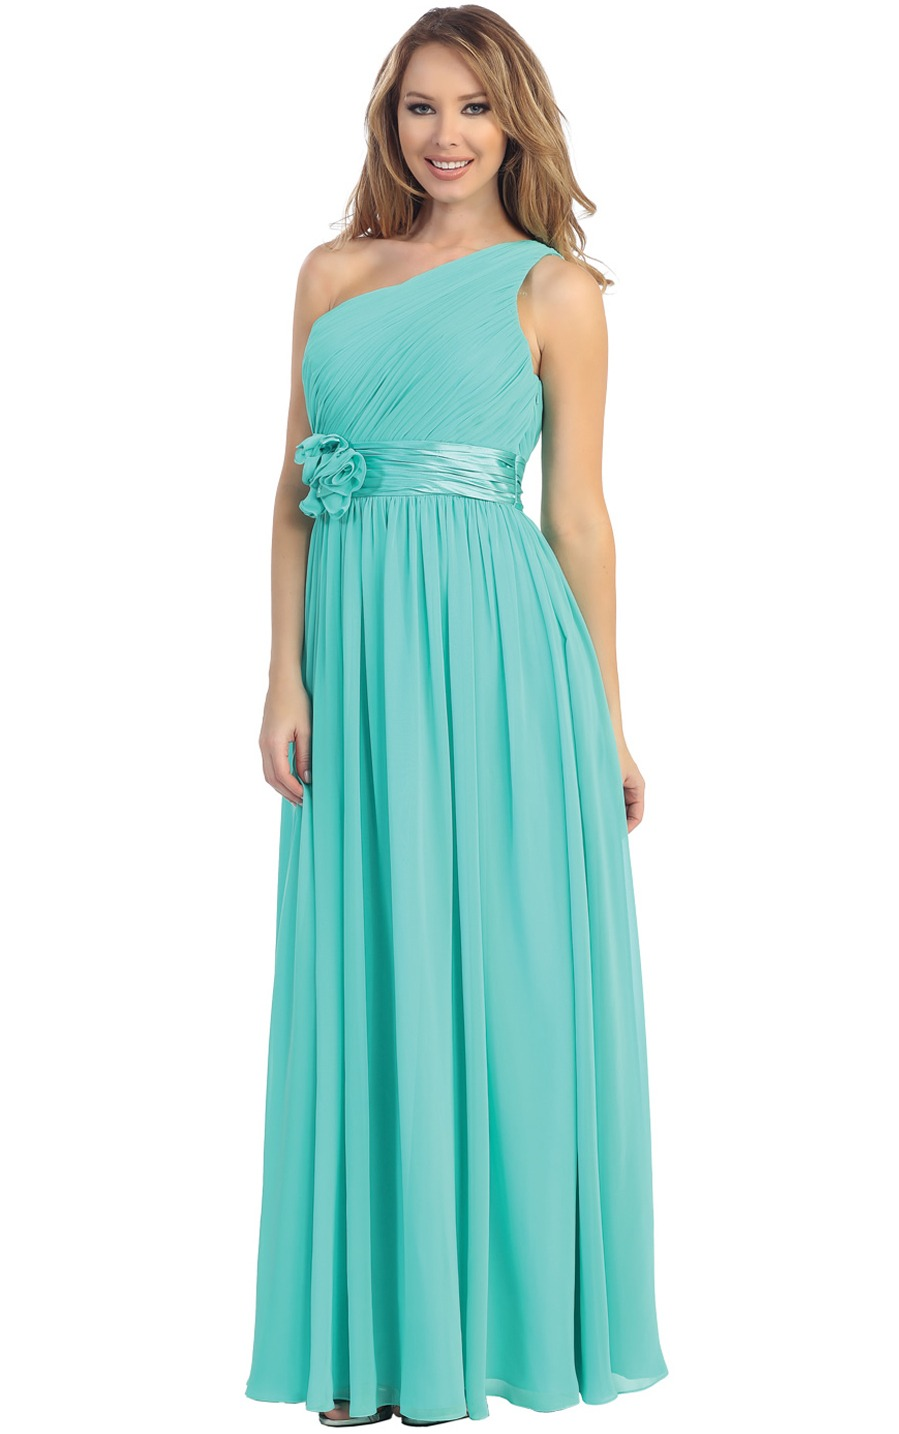 Pale Turquoise Bridesmaid Dresses Uk - Flower Girl Dresses